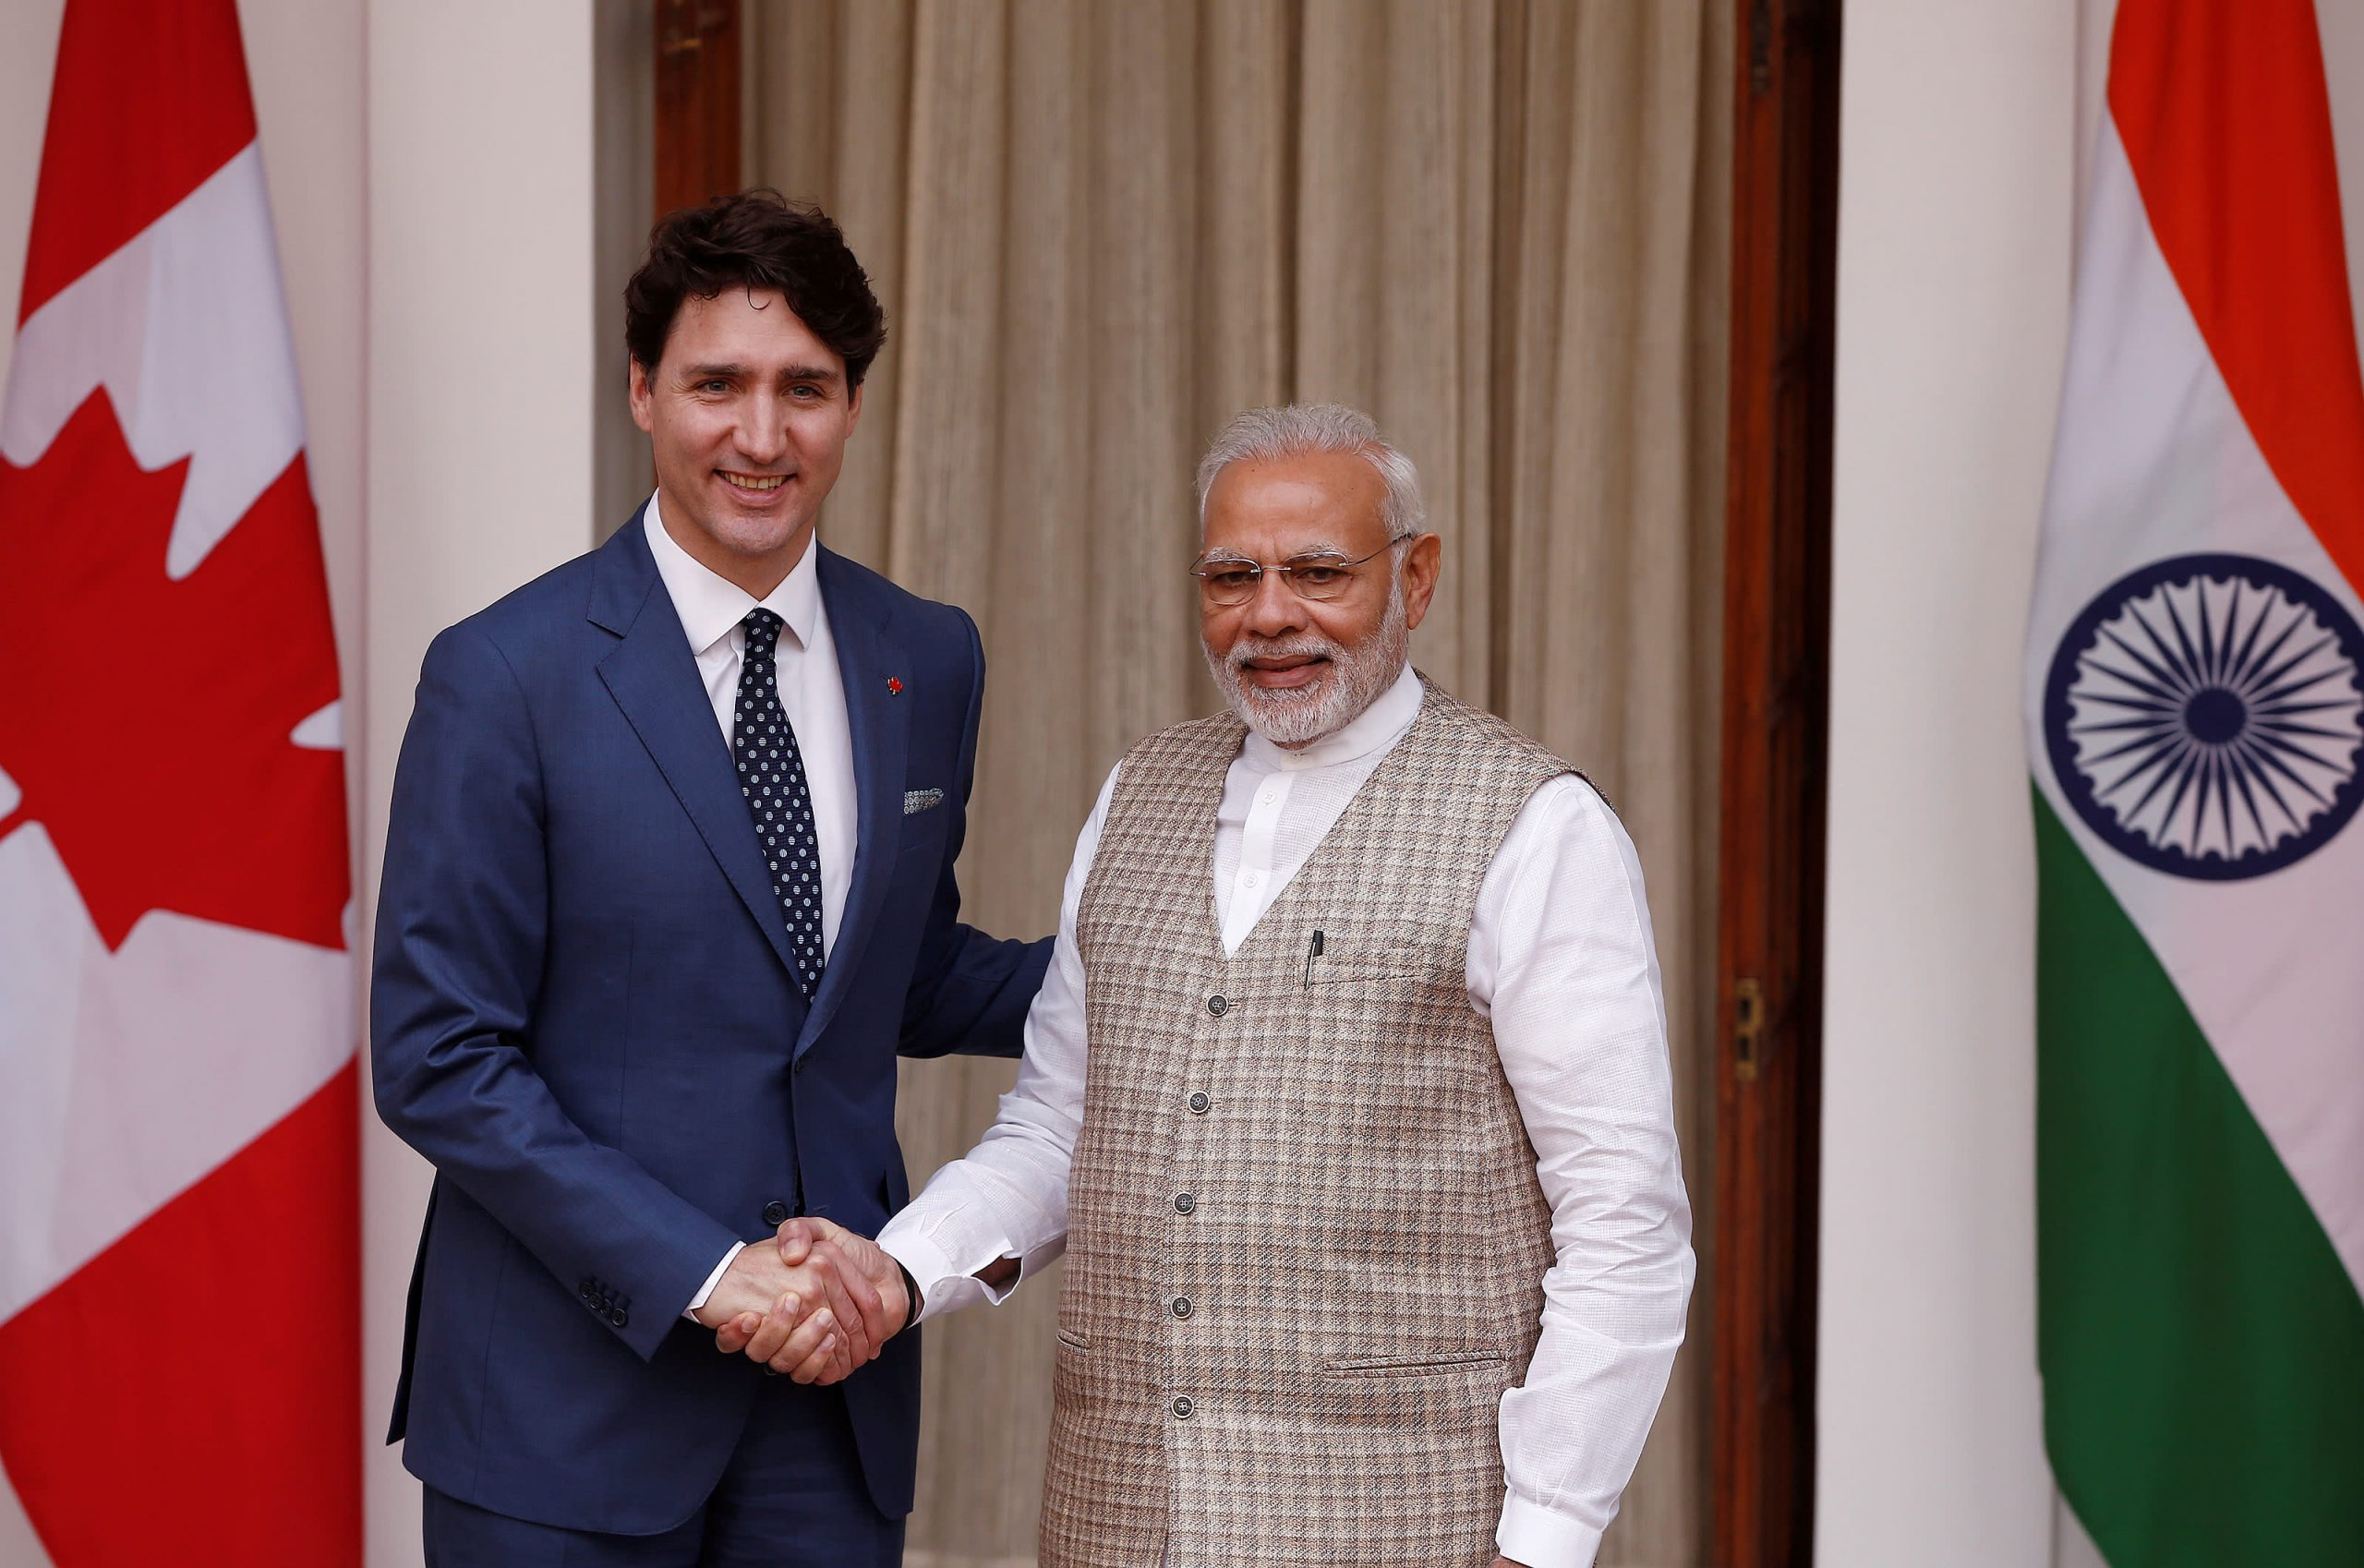 The leaders came to a consensus over the possibility of India-Canada partnership to be a force for good in the post-COVID world.